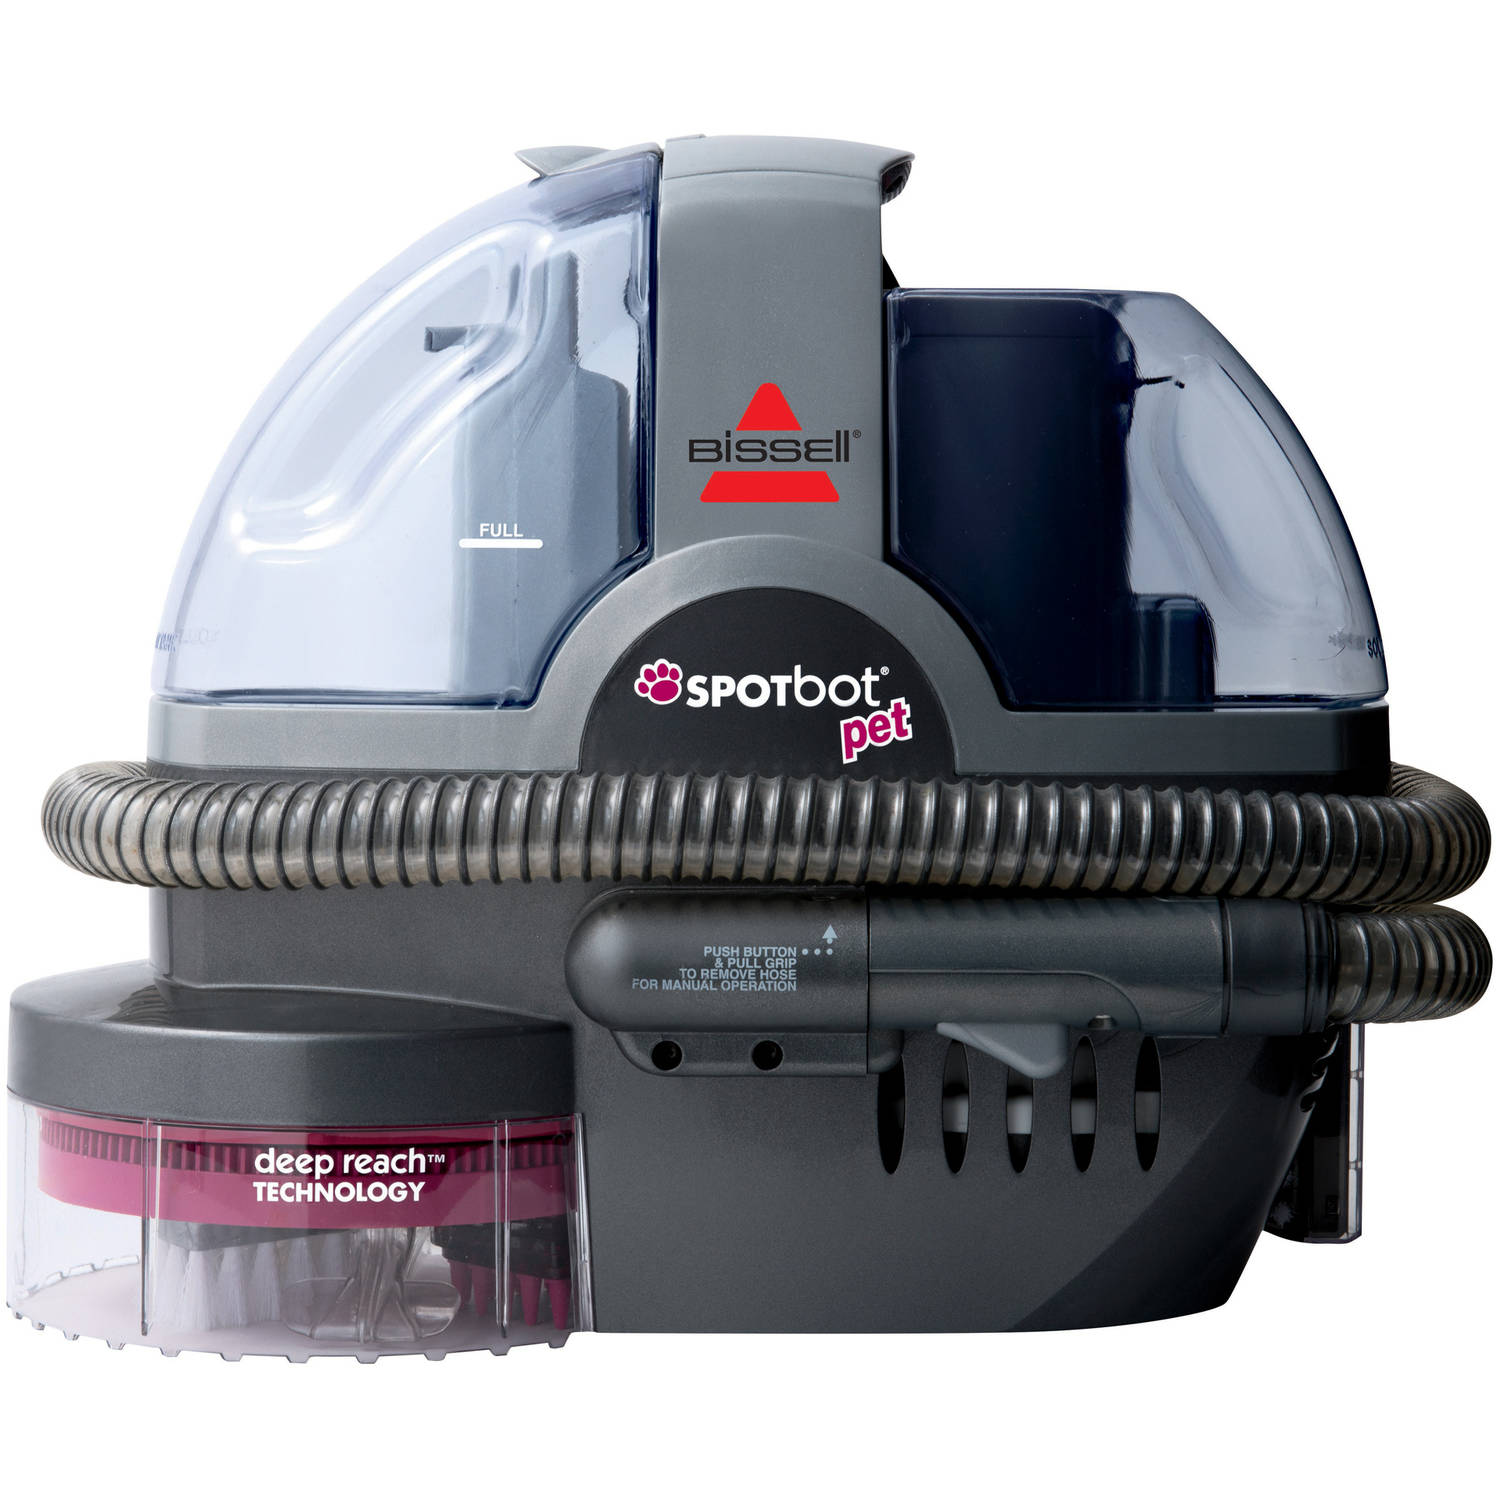 BISSELL SpotBot Pet Portable Spot and Stain Cleaner, 33N8A